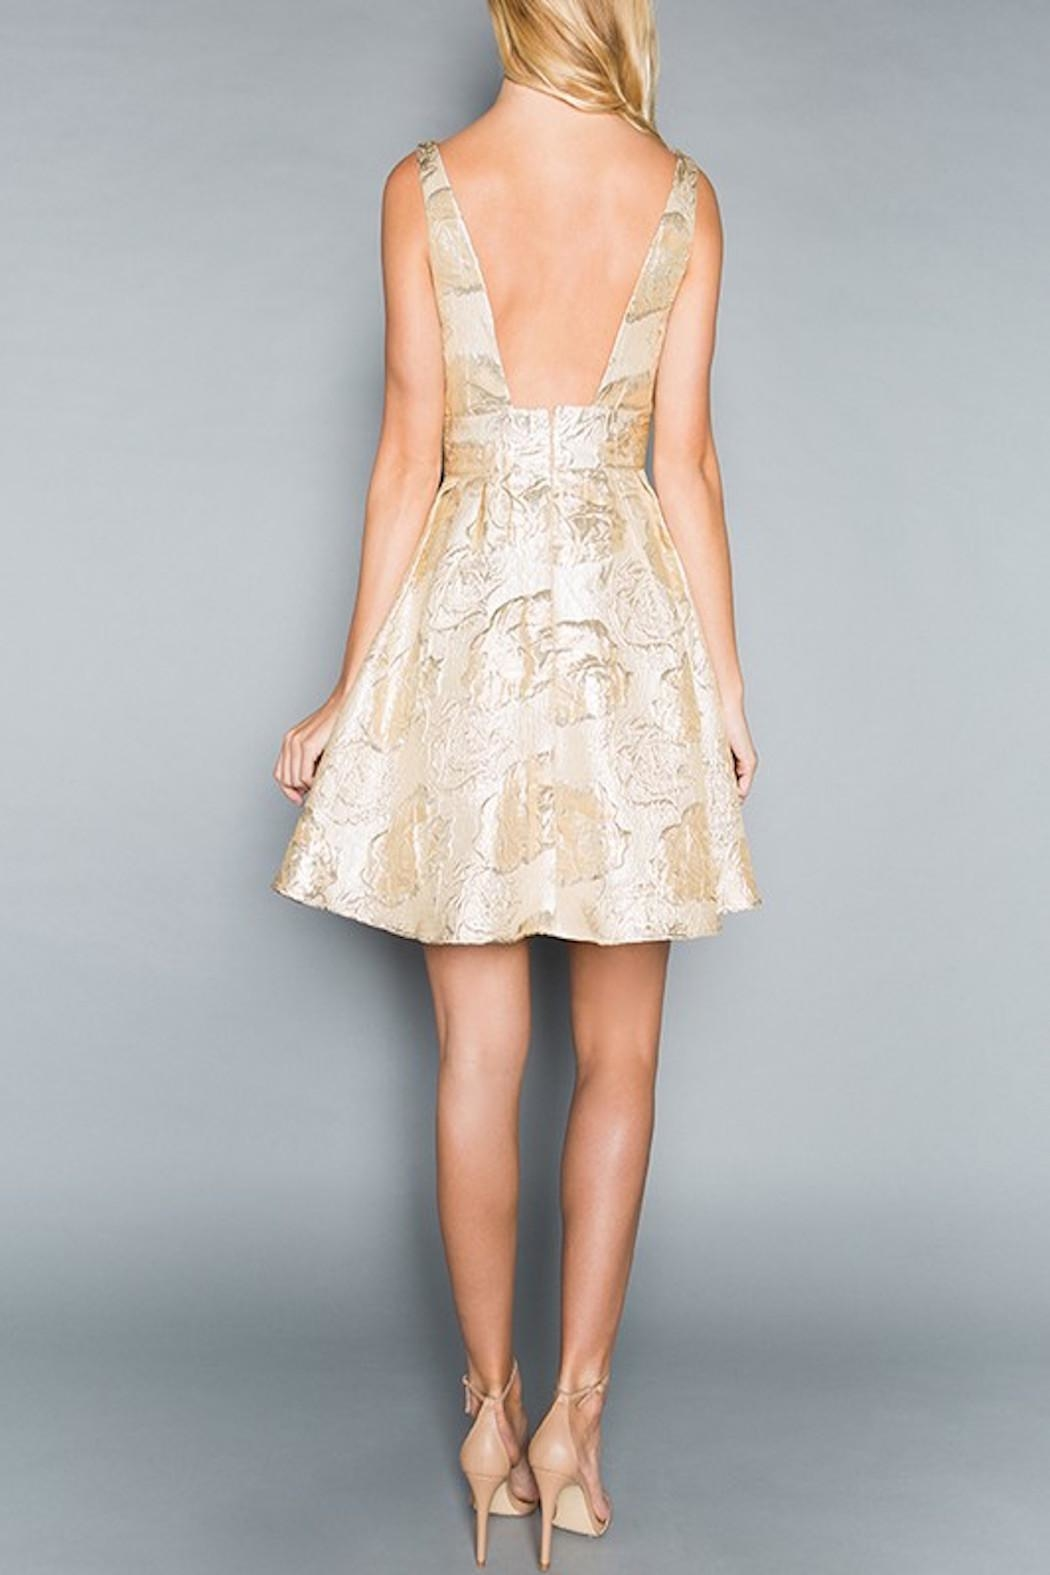 Apricot Lane Go For Gold Dress - Side Cropped Image